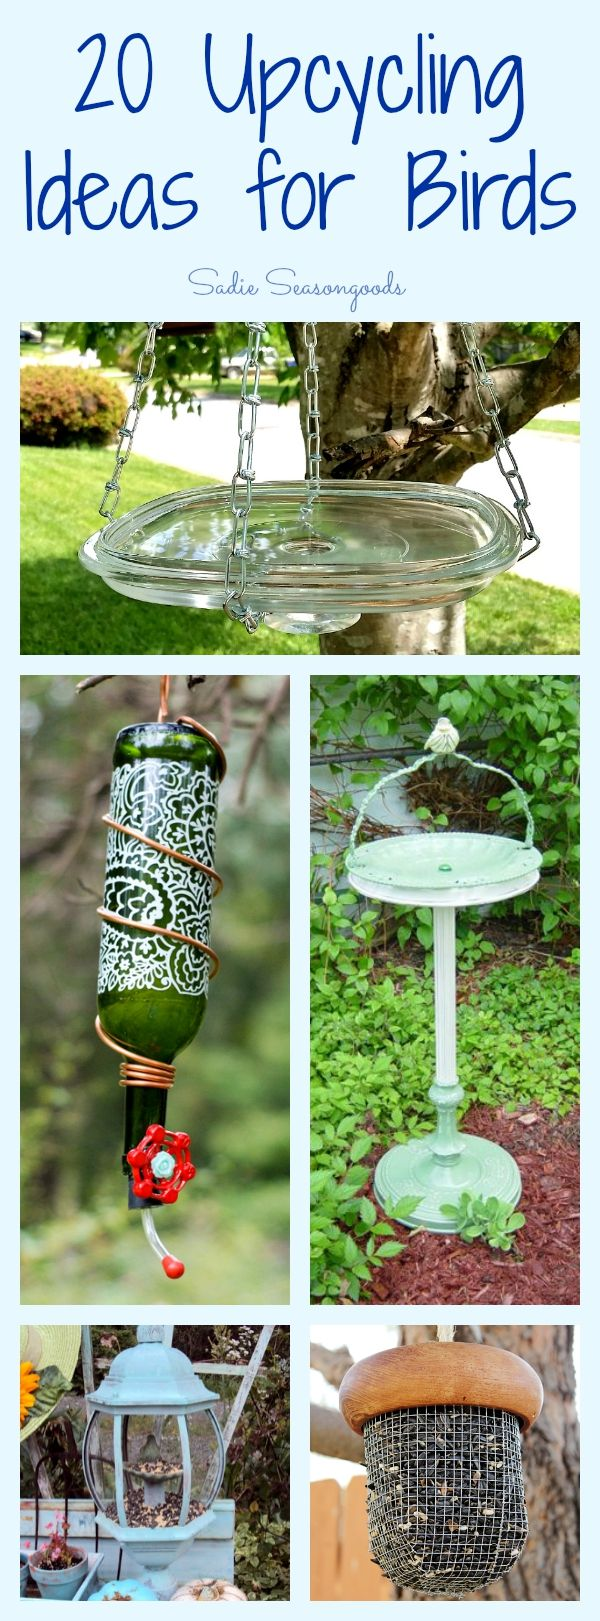 Glass Yard Art Bird Feeder - Creating your own wildlife friendly yard is even more fun with you diy bird feeders